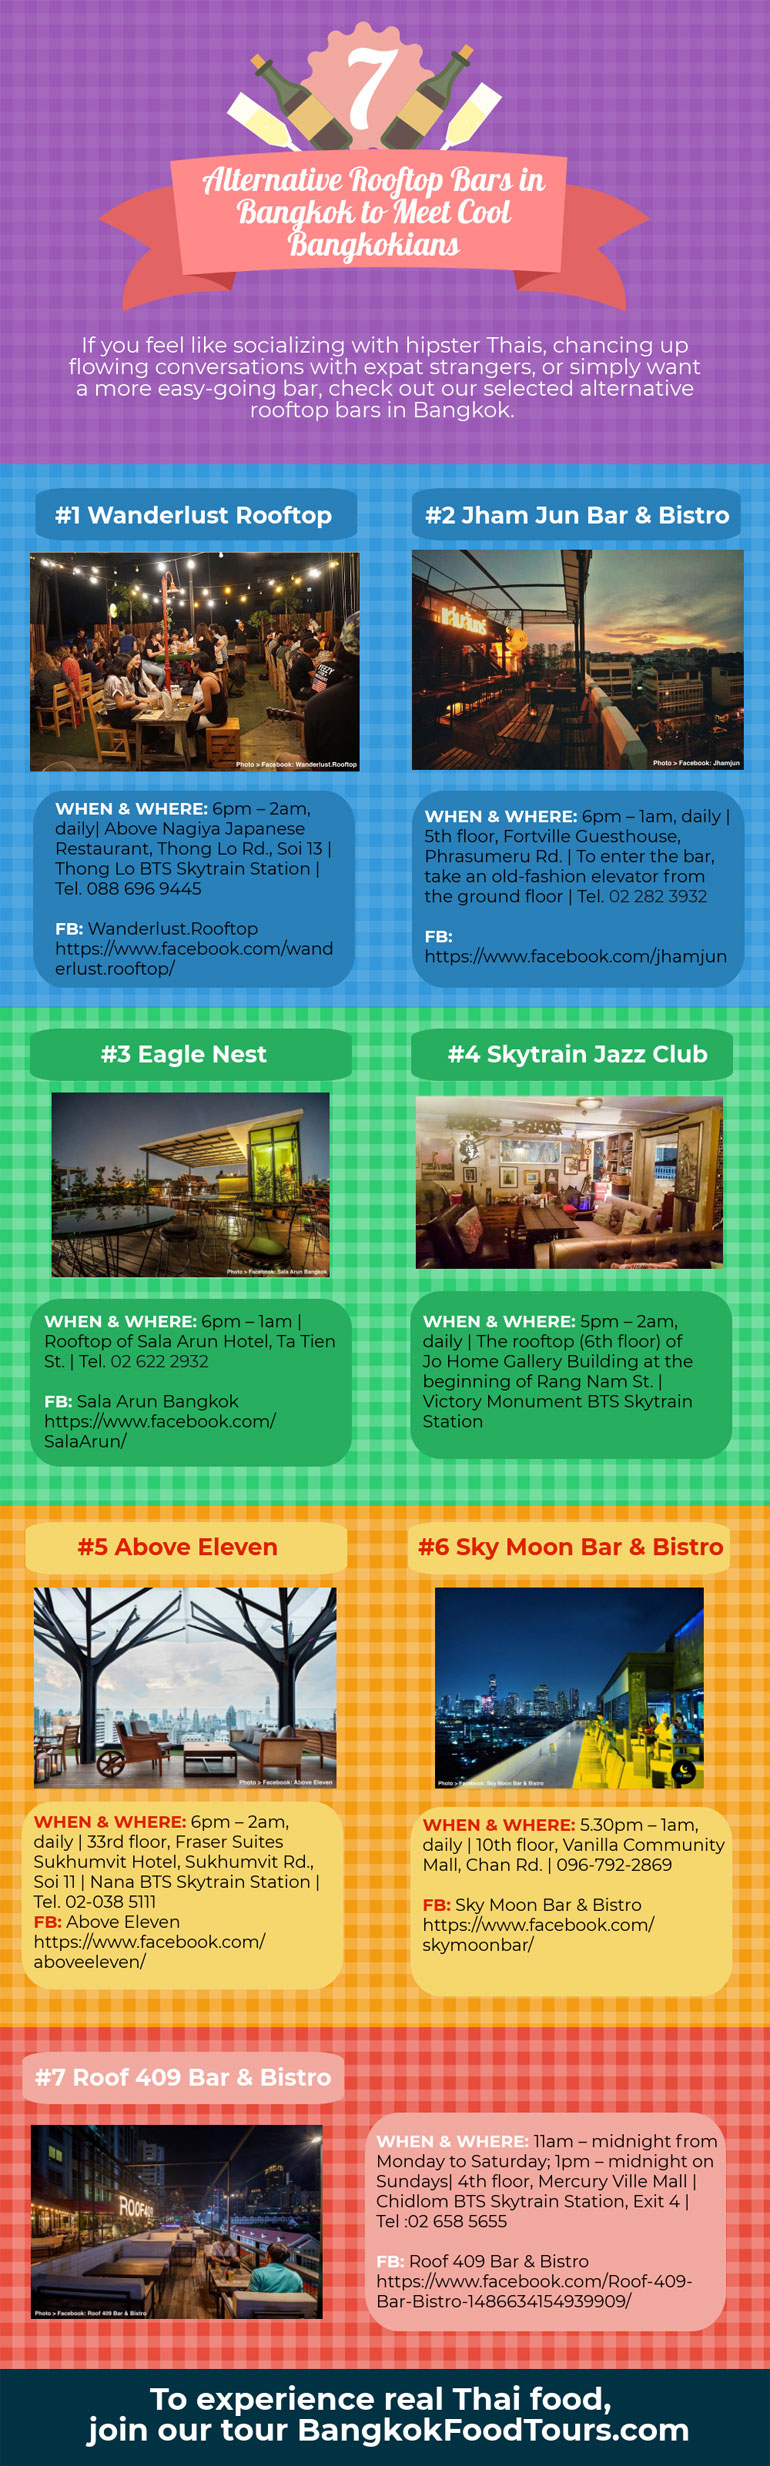 7 Alternative Rooftop Bars to Meet Cool Bangkokians_info graphic